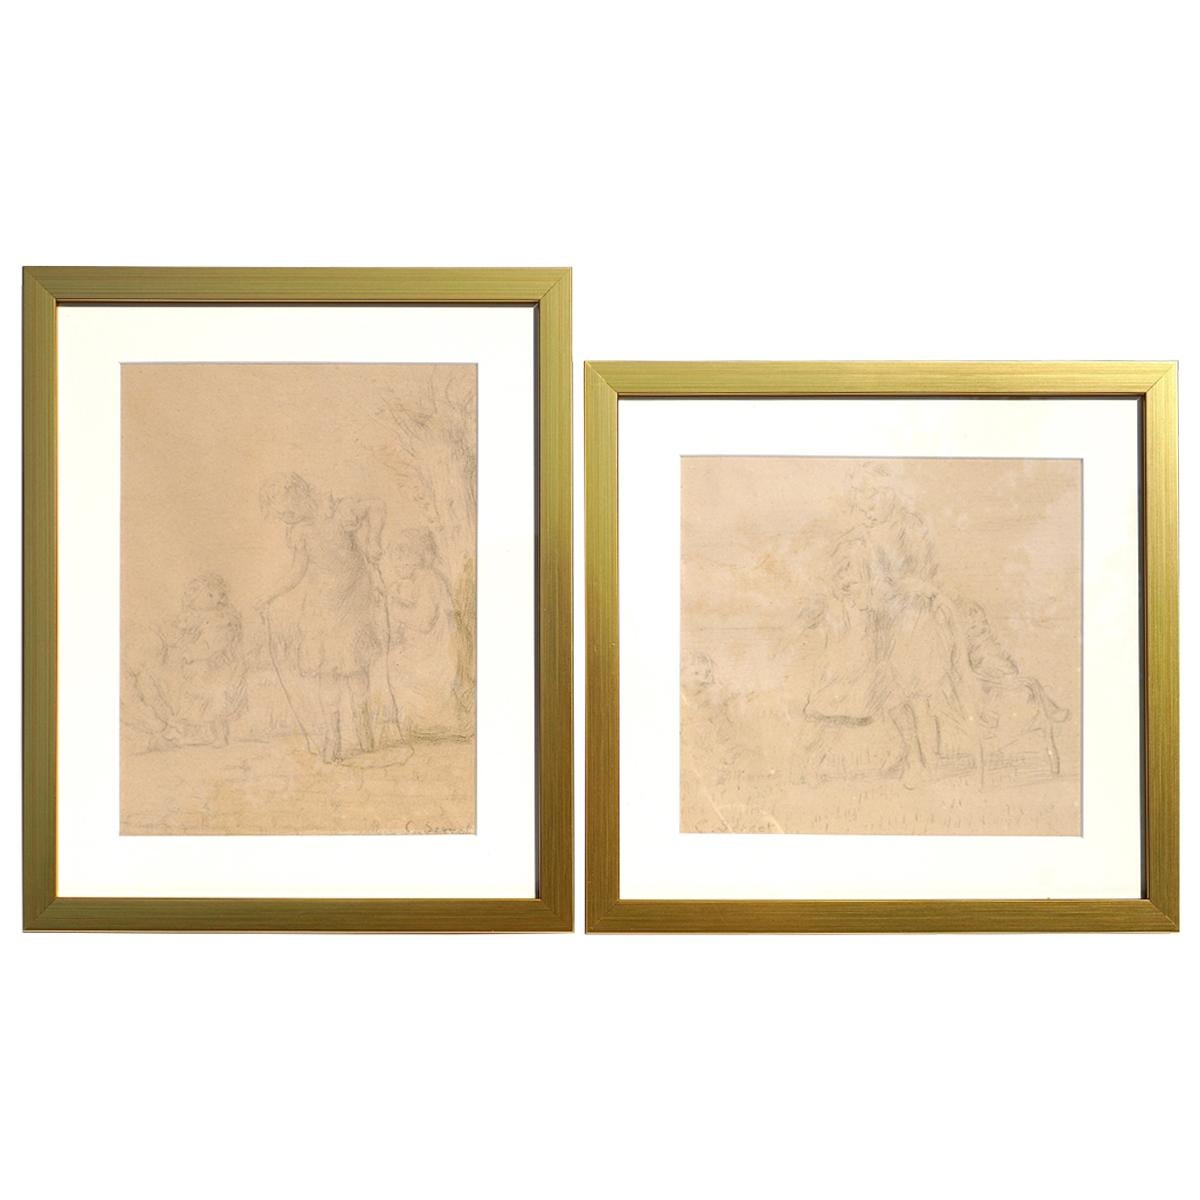 Charles Emmanuel Serret 'FR 1824-1900' Two Drawings of Children Playing